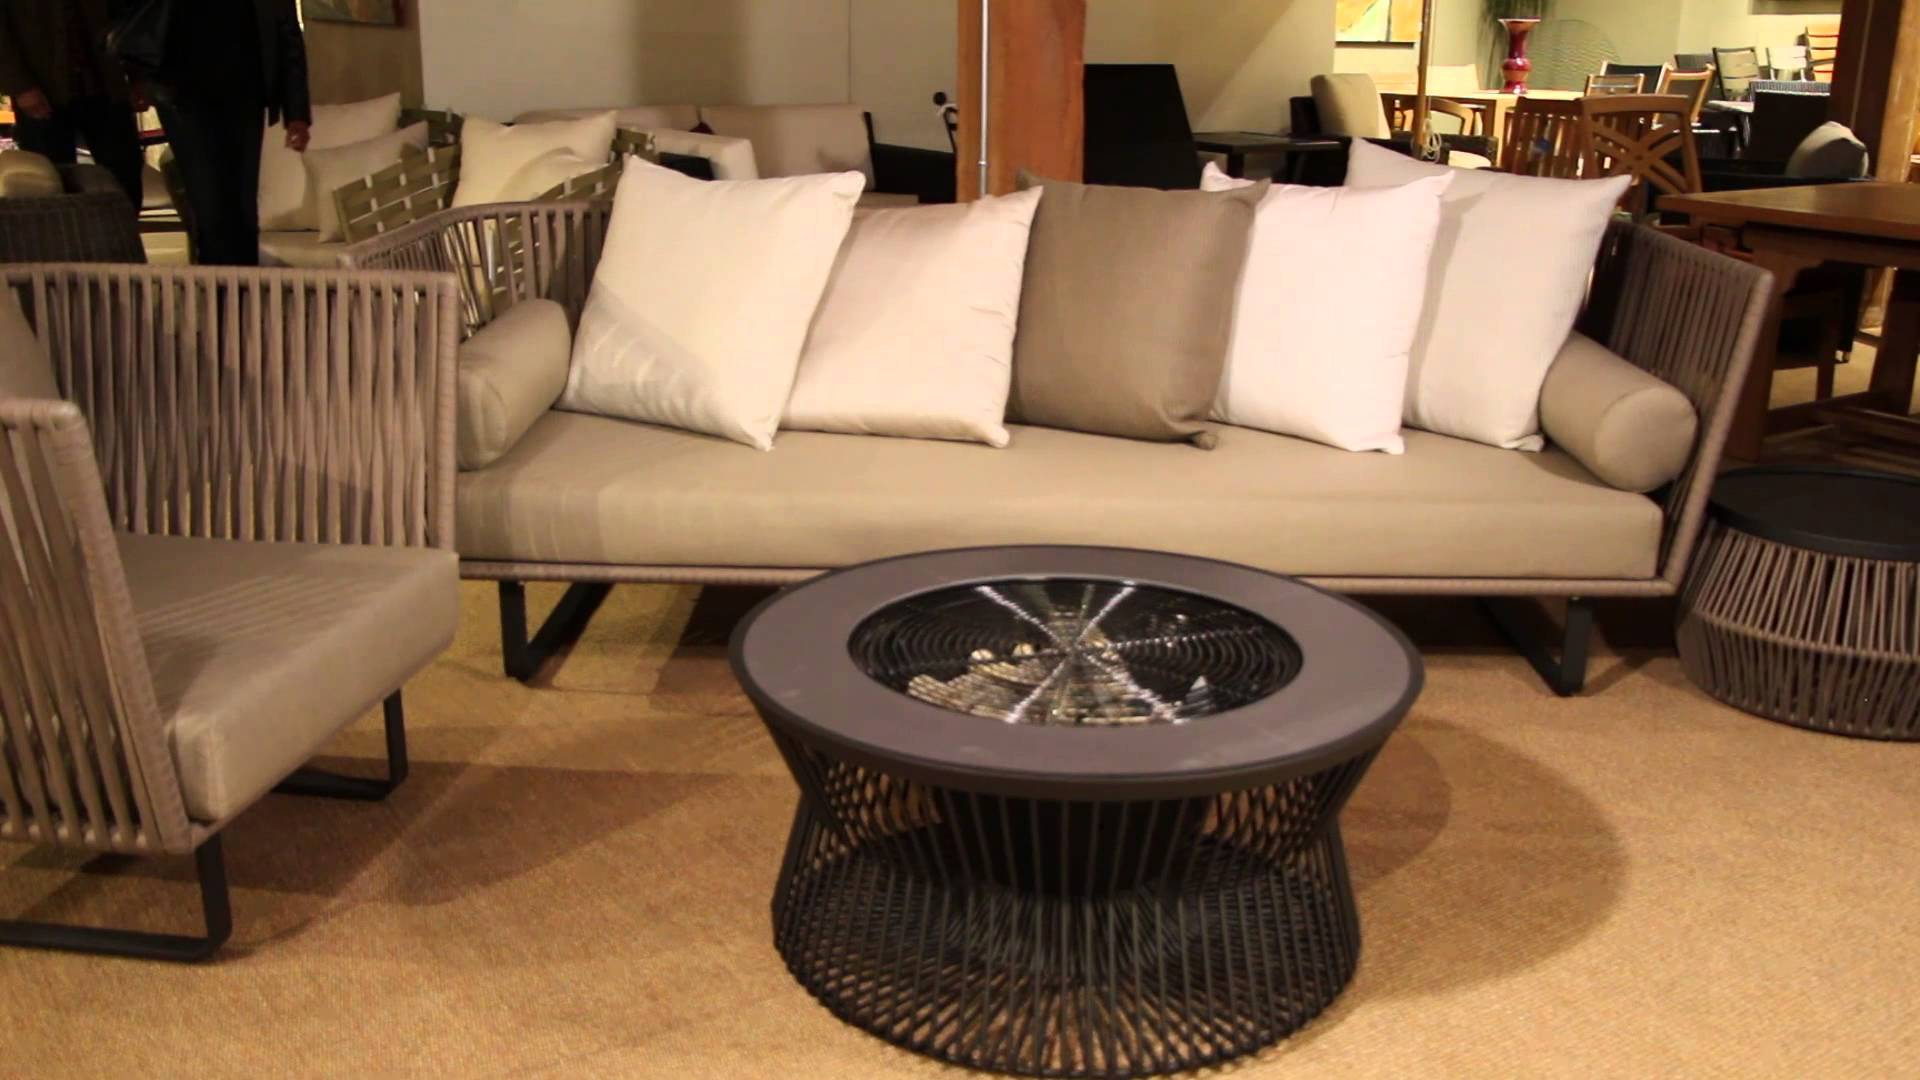 Garden Furniture Trends outdoor furniture trends and styles 2015 - youtube XOVMWME